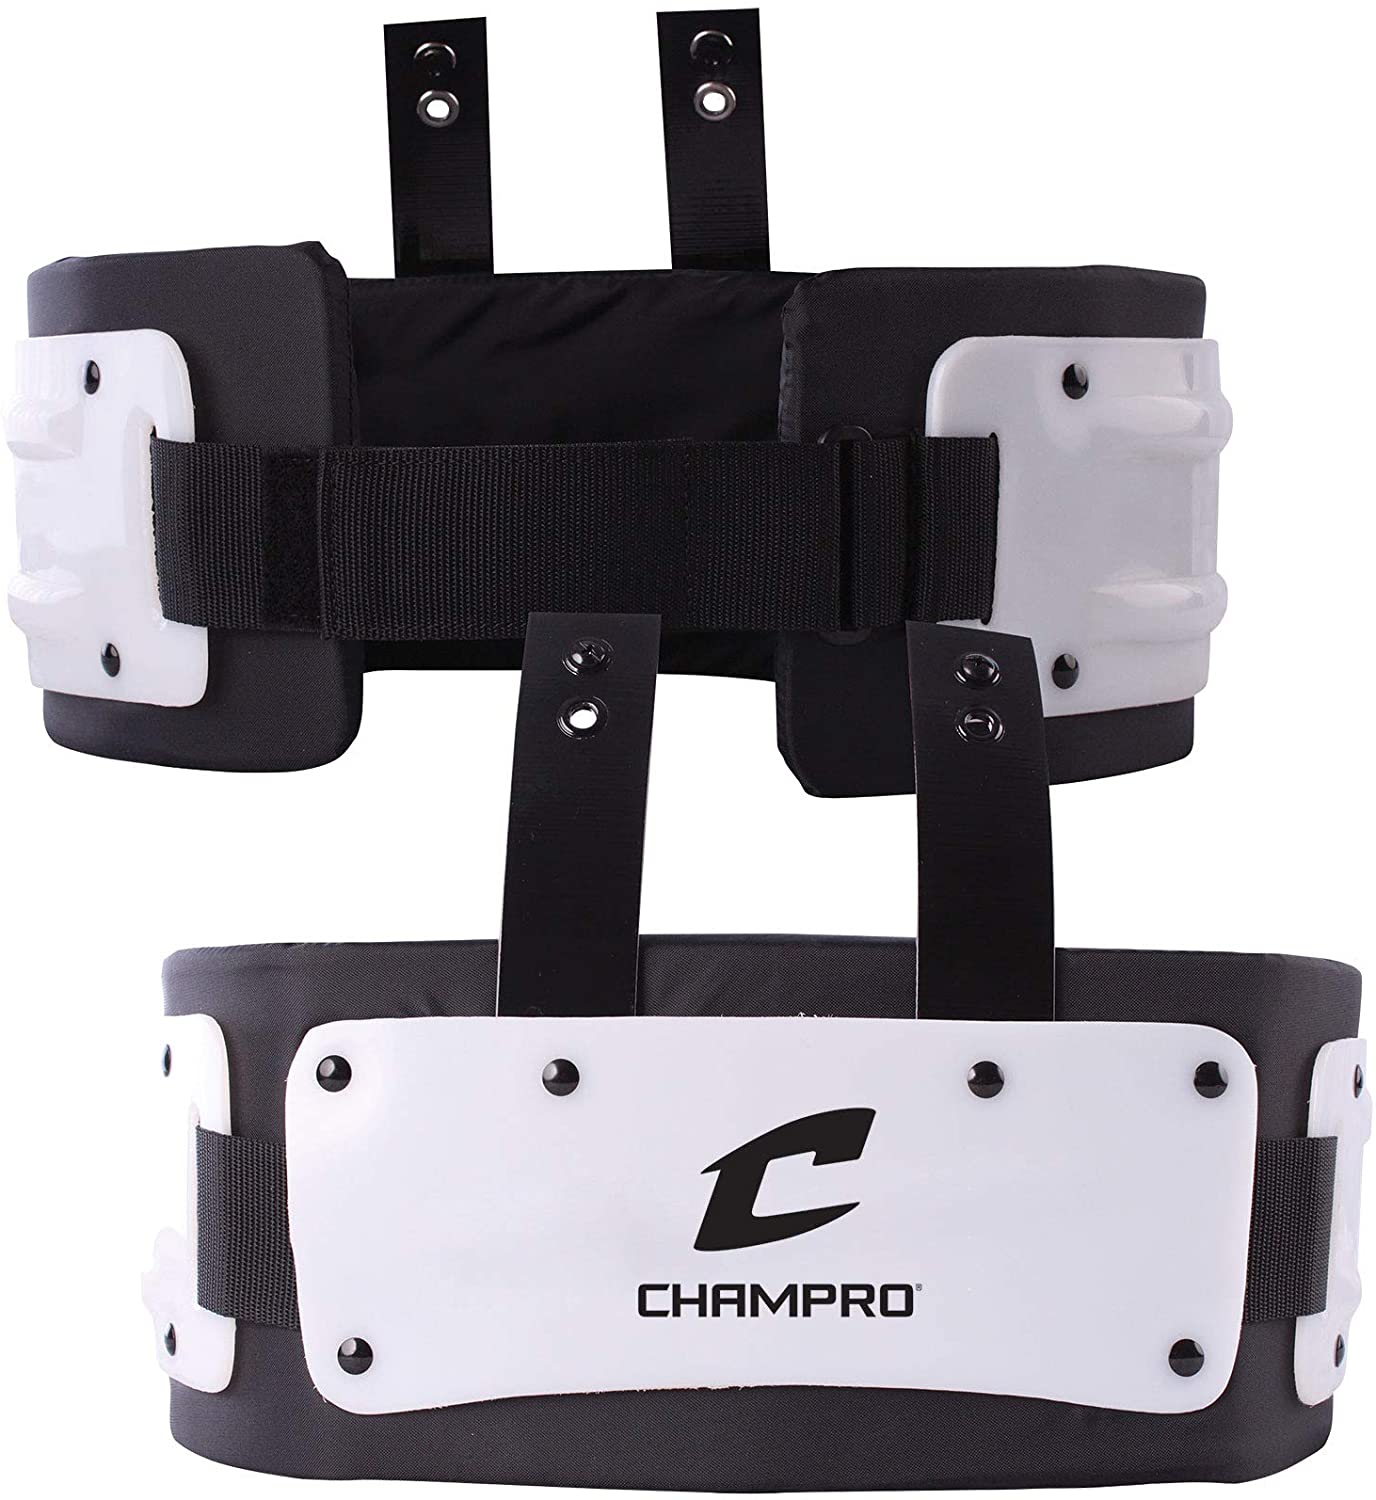 CHAMPRO Adult Rib Protector Ranking Price reduction TOP3